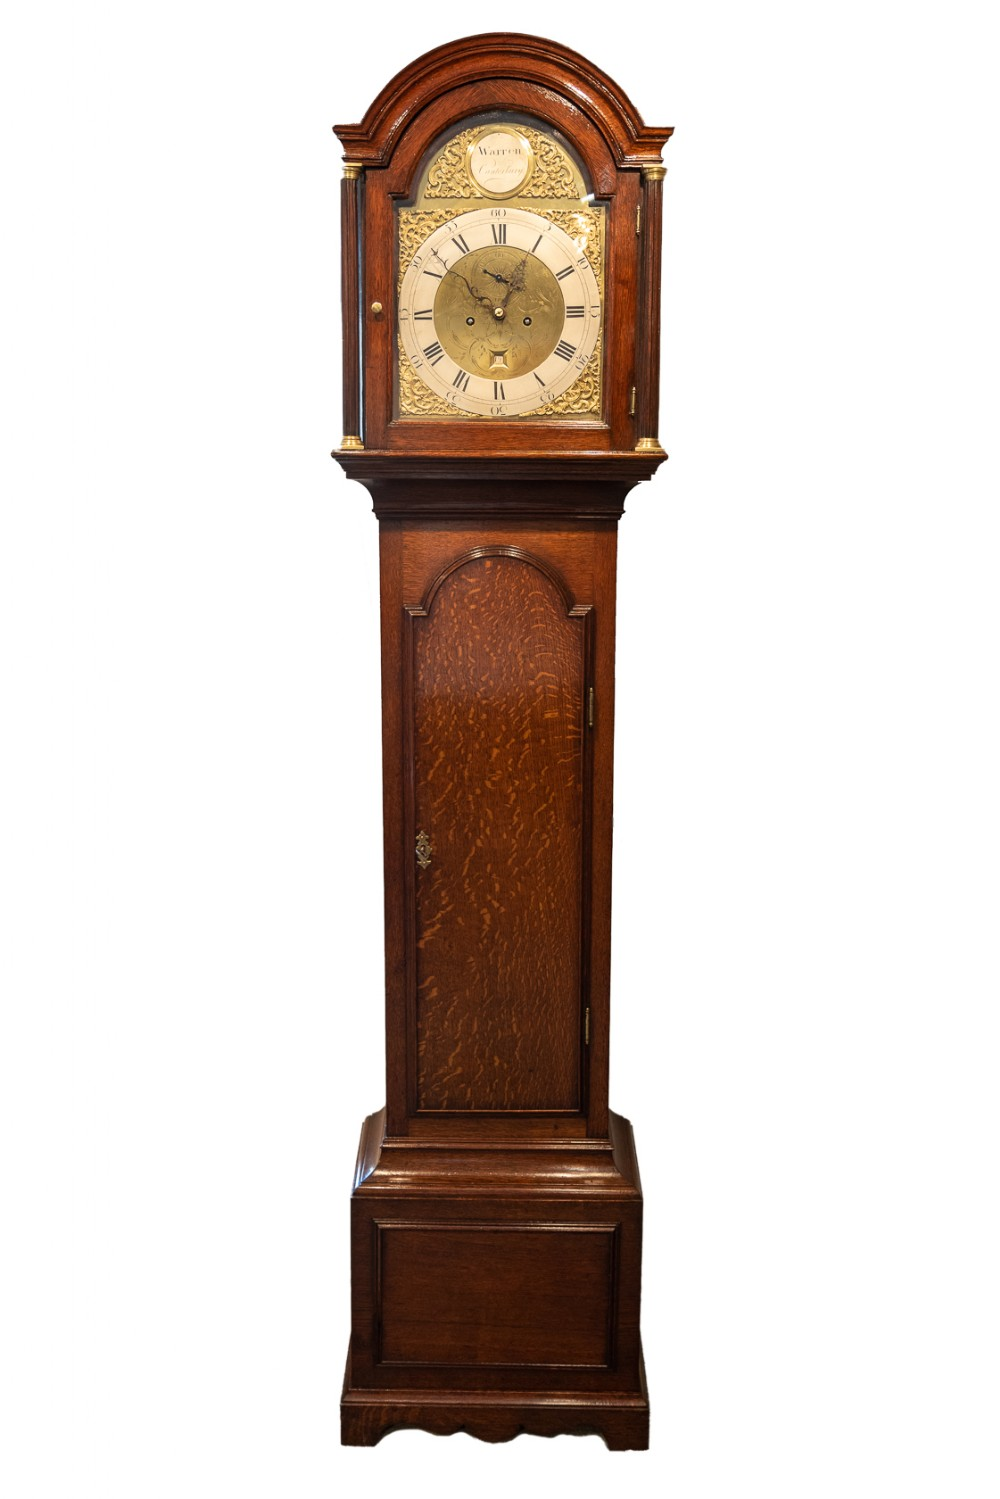 8 day arched brass dial longcase clock james warren of cantebury